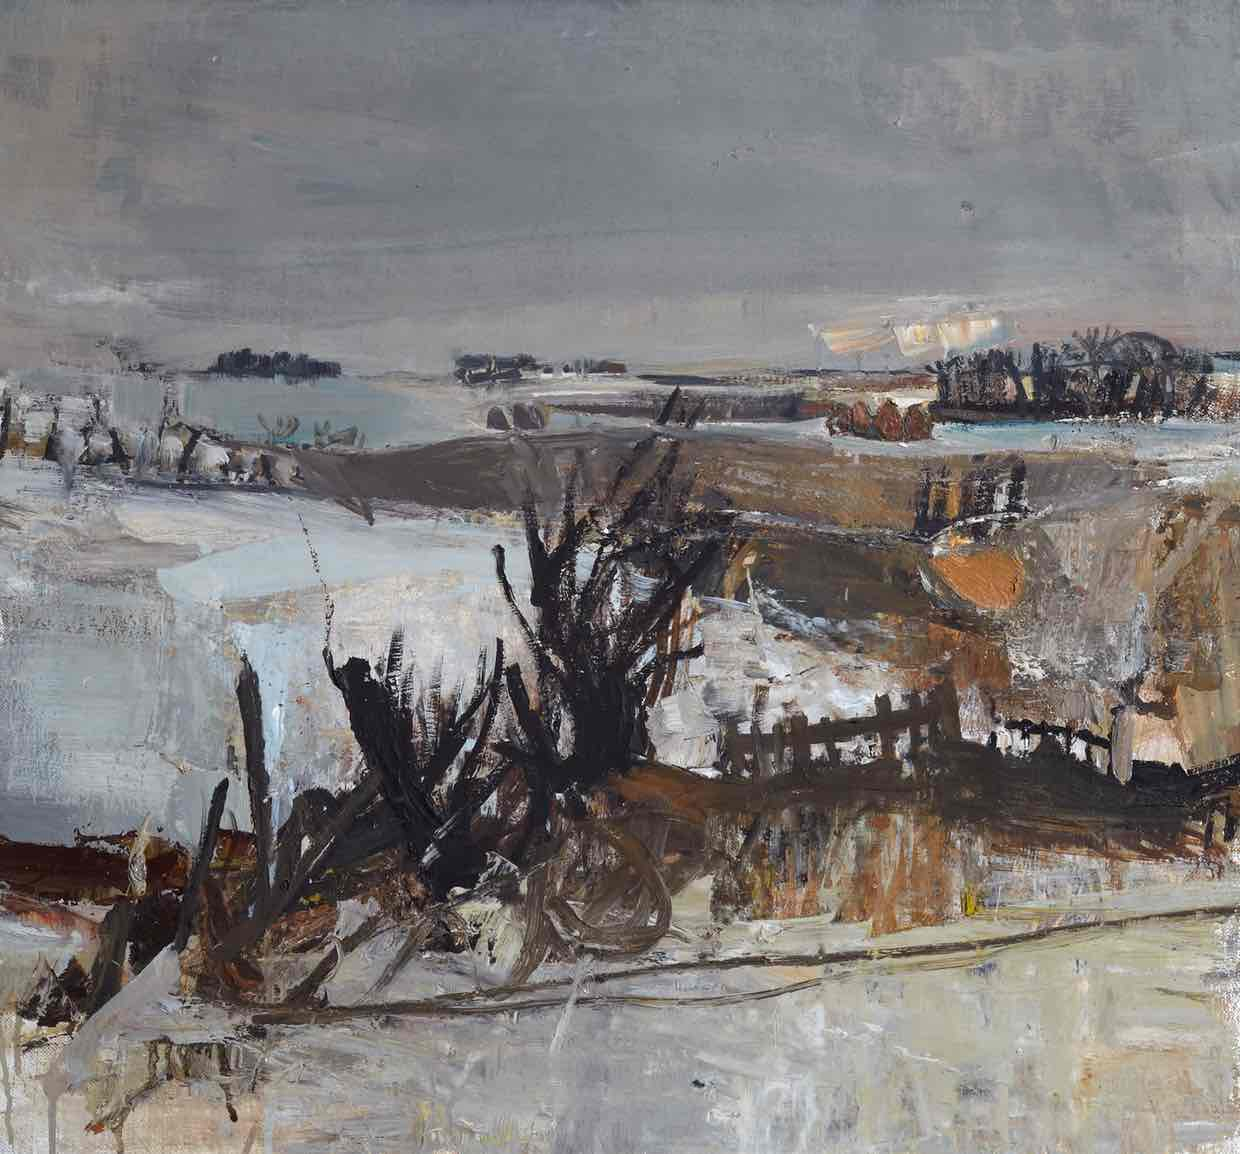 Joan Eardley, Fields Under Snow, 1958 (photo: Estate of Joan Eardley. All Rights Reserved, DACS 2016)